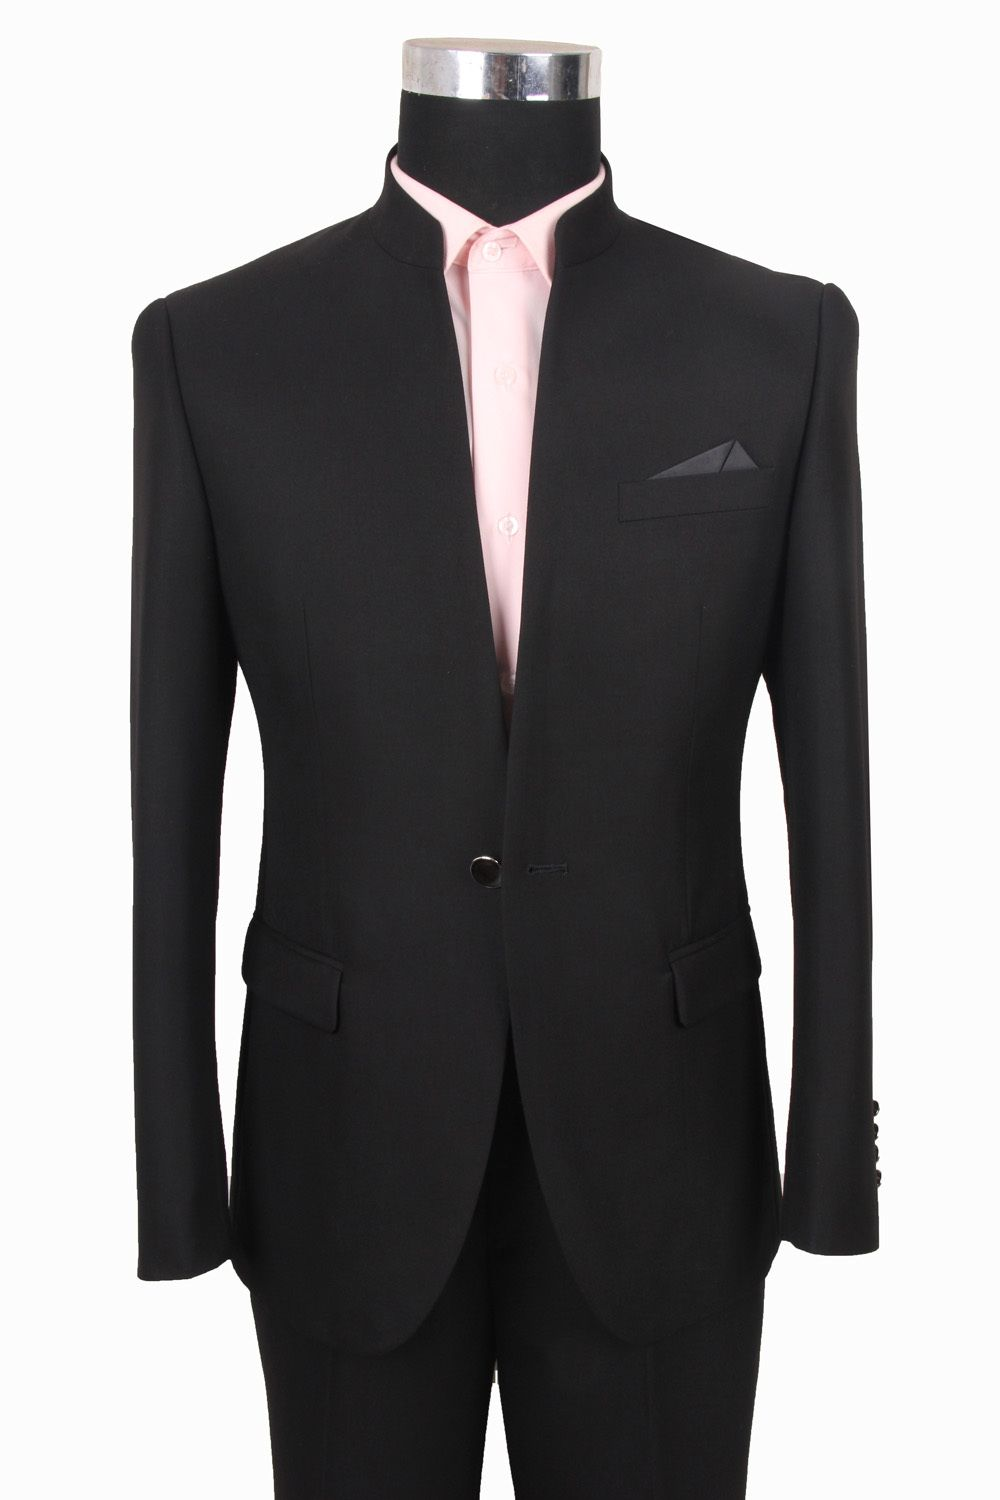 44d8921a89 Taobao new pierre cardin men's suits korean chinese collar slim married  tunic a buckle black china english wholesale